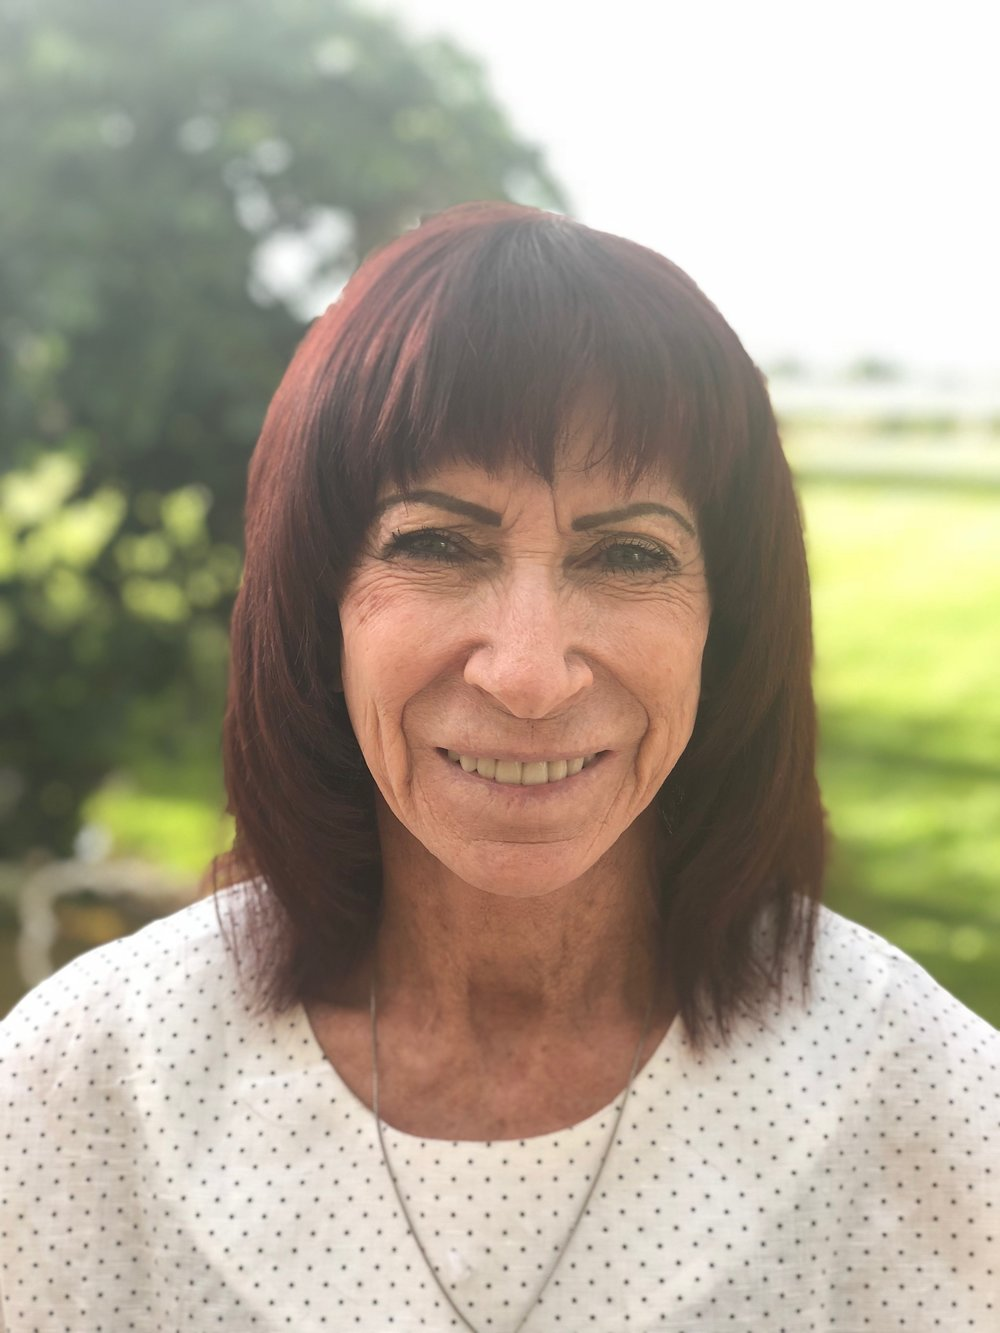 Chris Chournos - Miss Chris is our amazing Co-Fitness Director! She teaches our dancers strength and flexibility through different exercises! Come try one of her classes Monday- Thursday mornings. Check our class schedule for exact times.